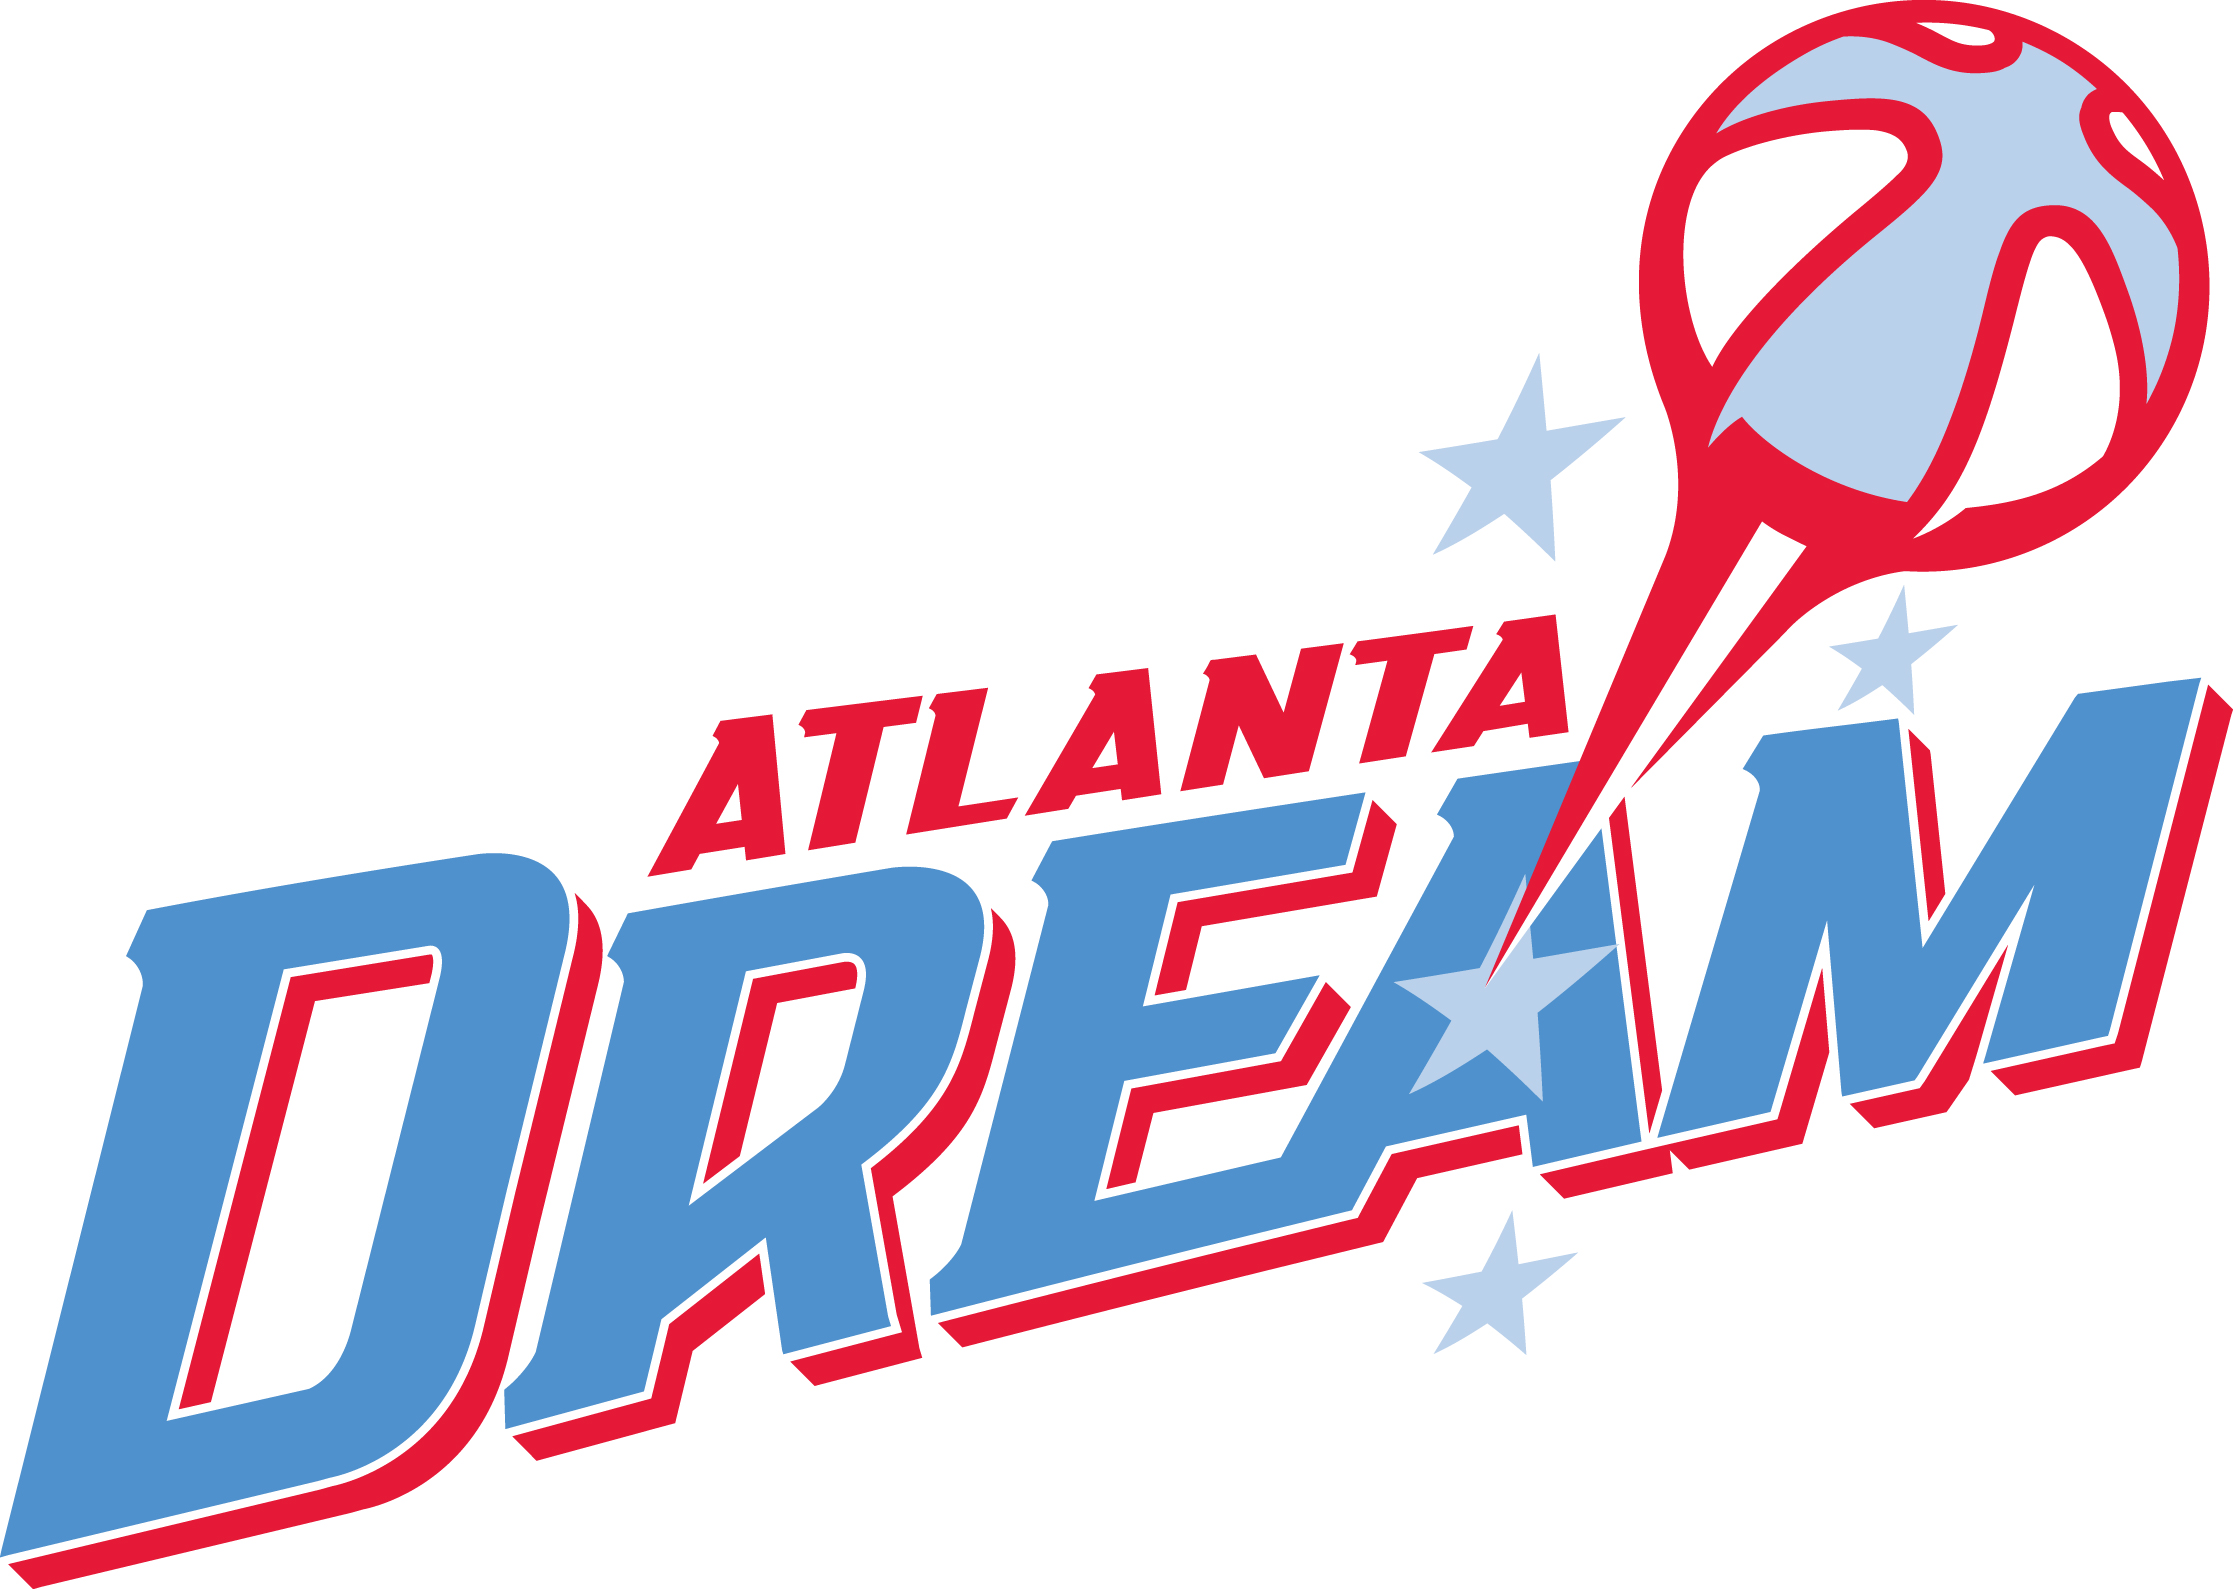 The Atlanta Dream returns to playing downtown in 2019 at a new State Farm Arena